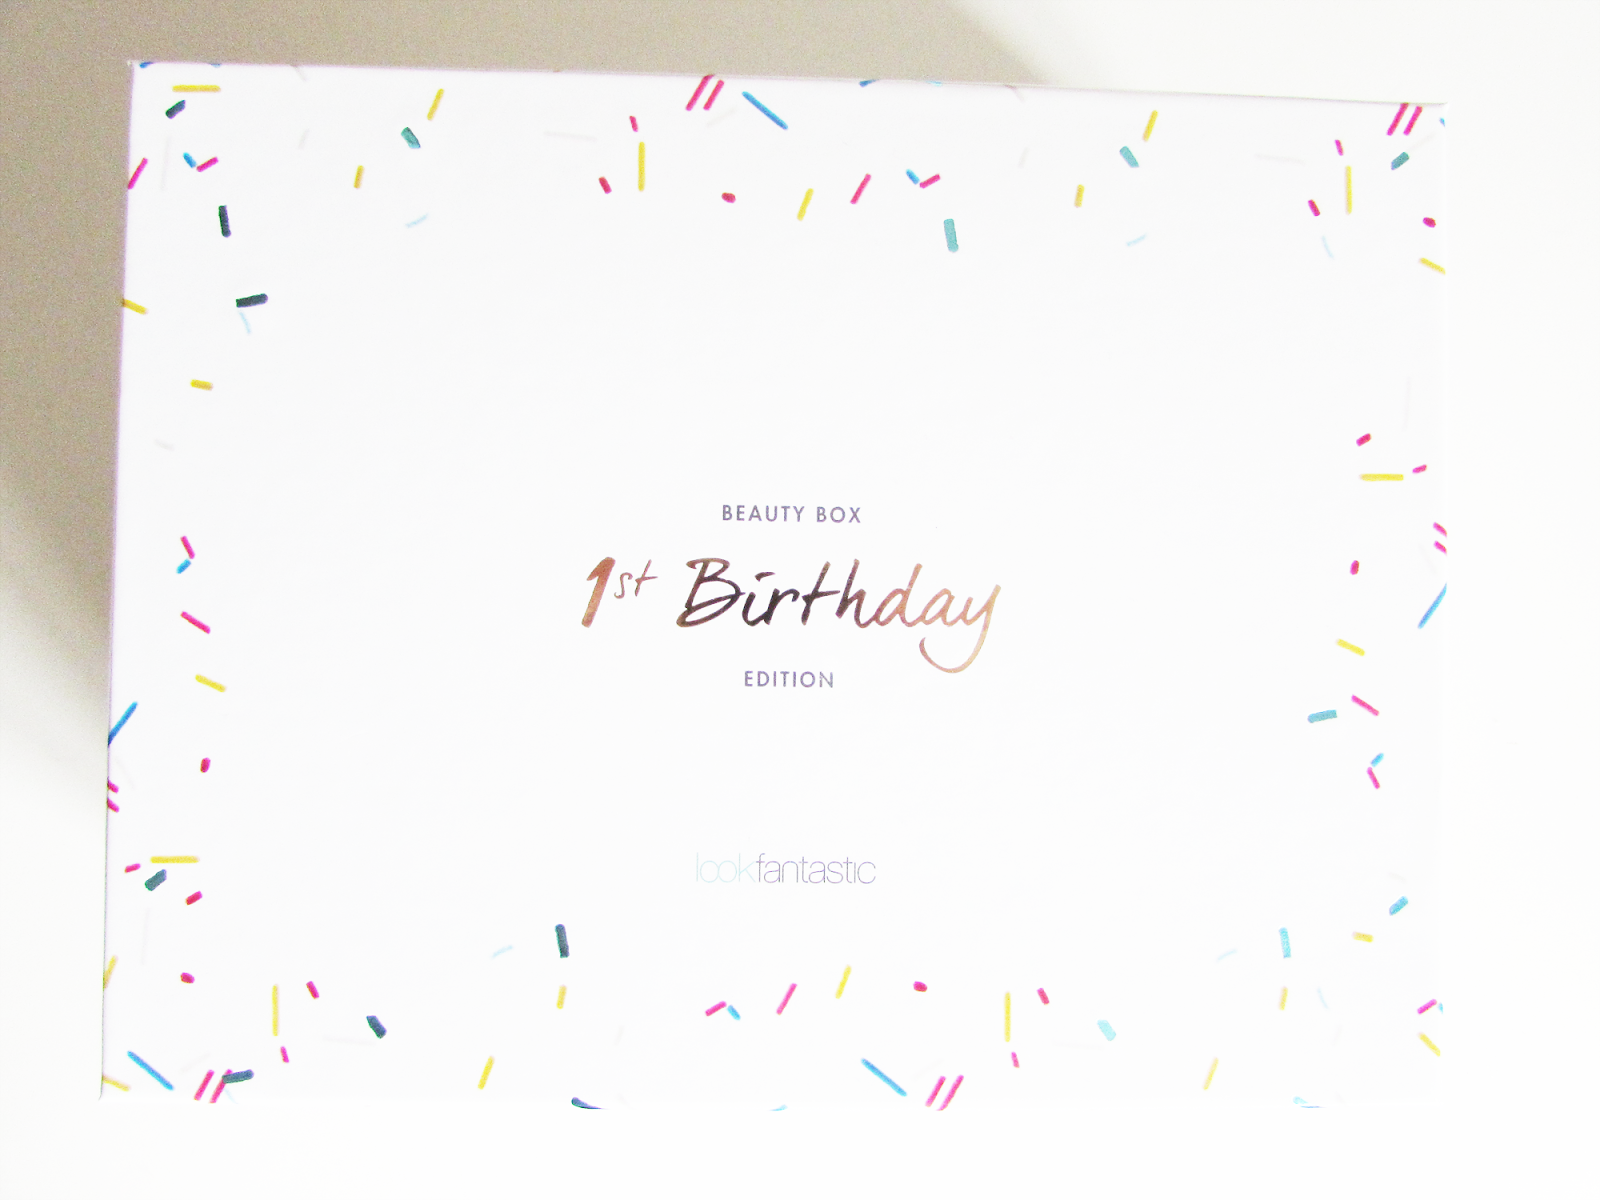 Look Fantastic September Beauty Box | 1st Birthday Edition!